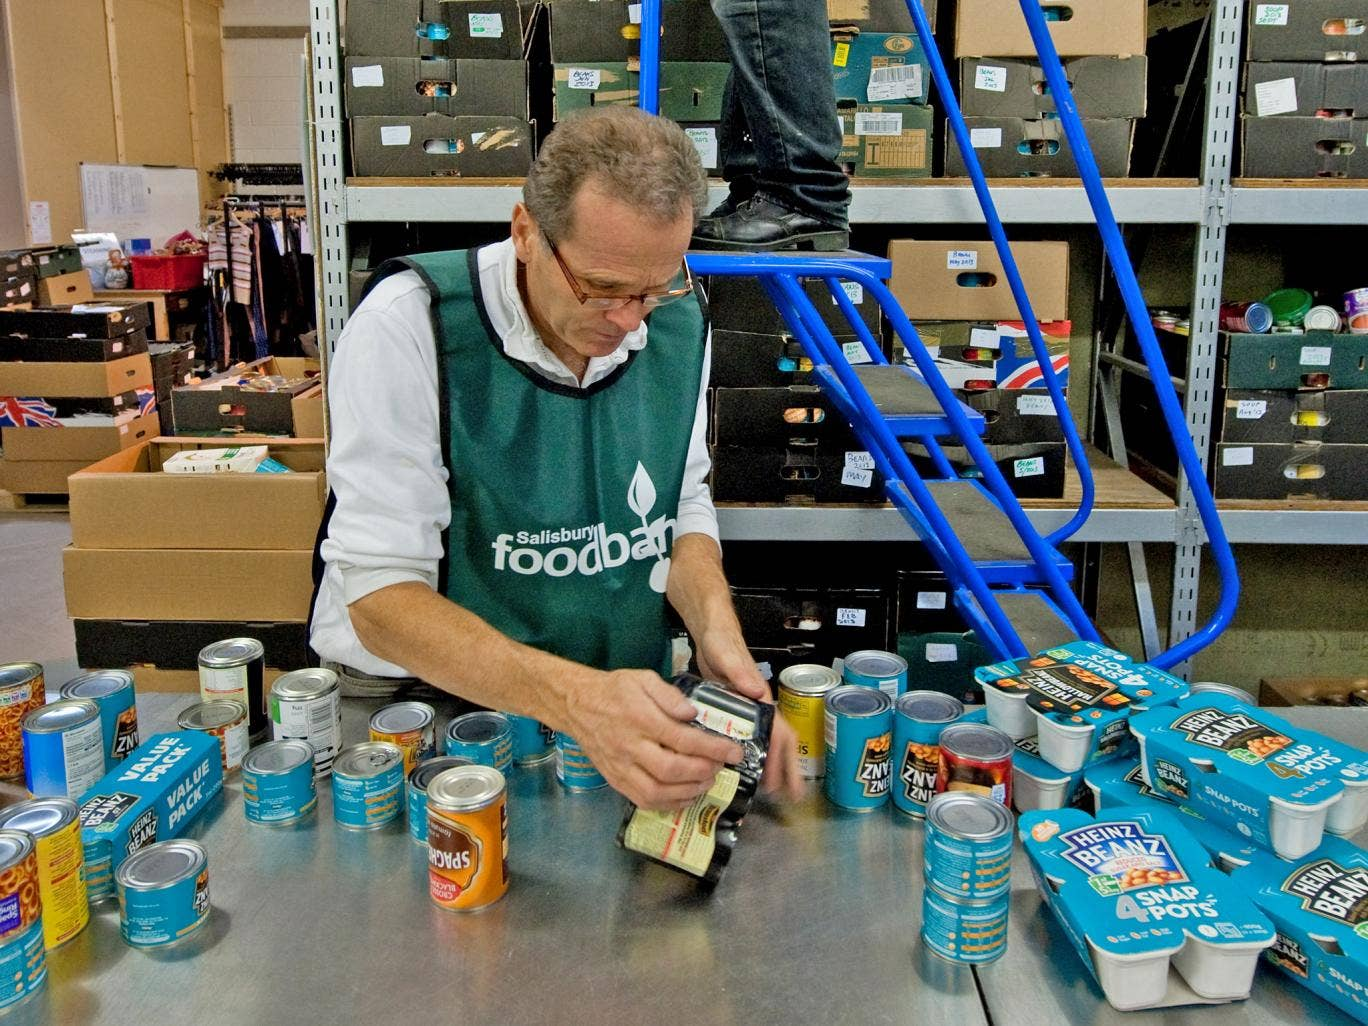 A volunteer at a Trussell Trust food bank sorts donations to the charity in Salisbury, Wiltshire